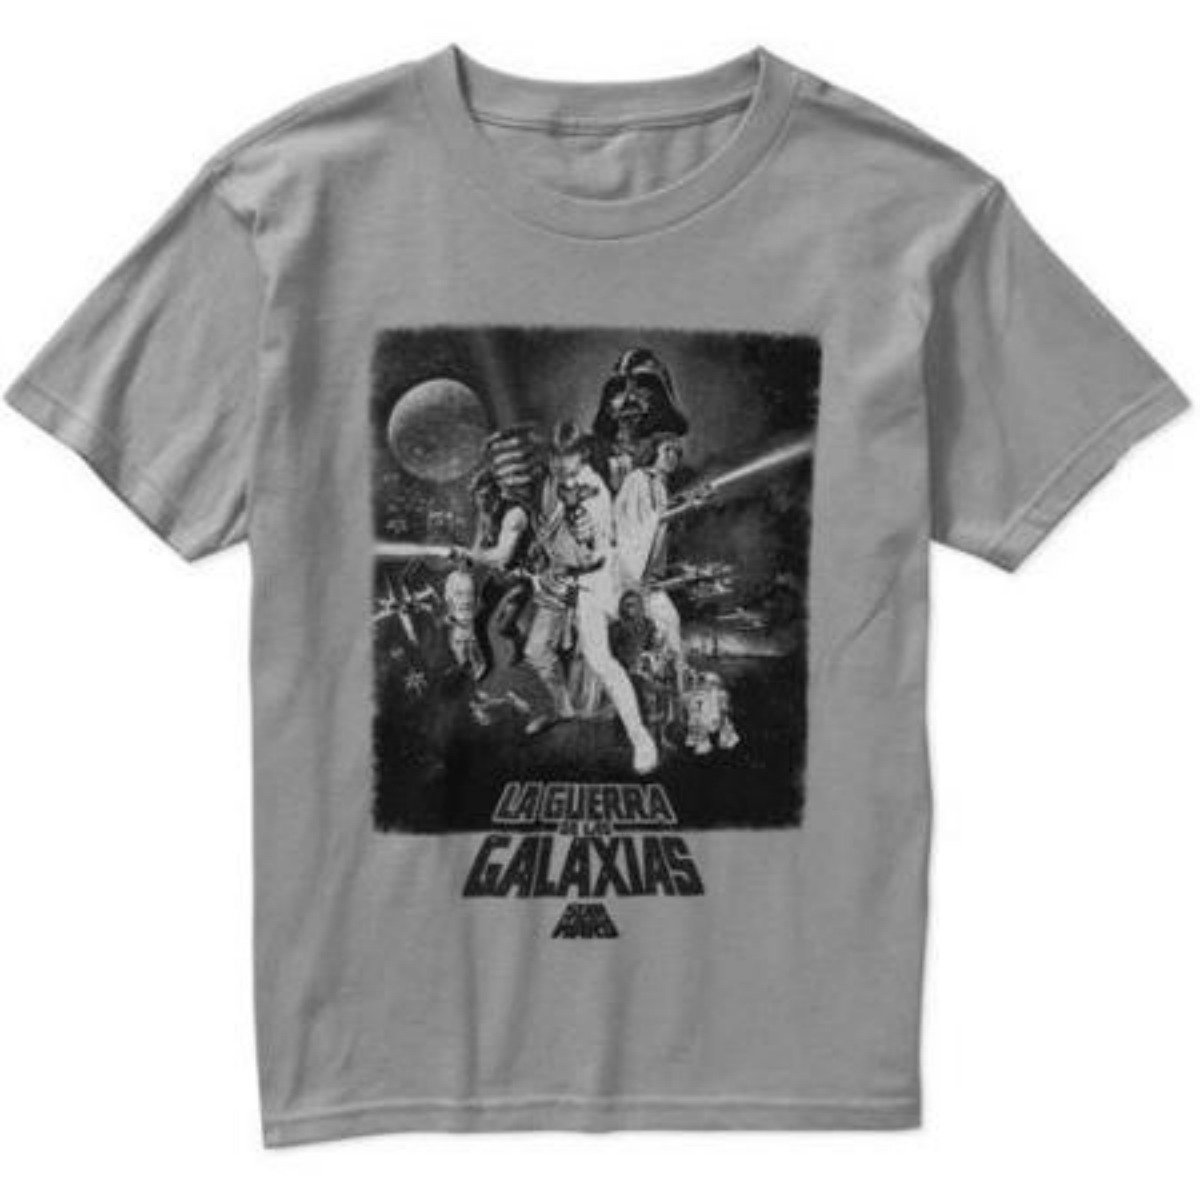 Star Wars Vintage Spanish Movie Poster T-Shirt For Boys 0